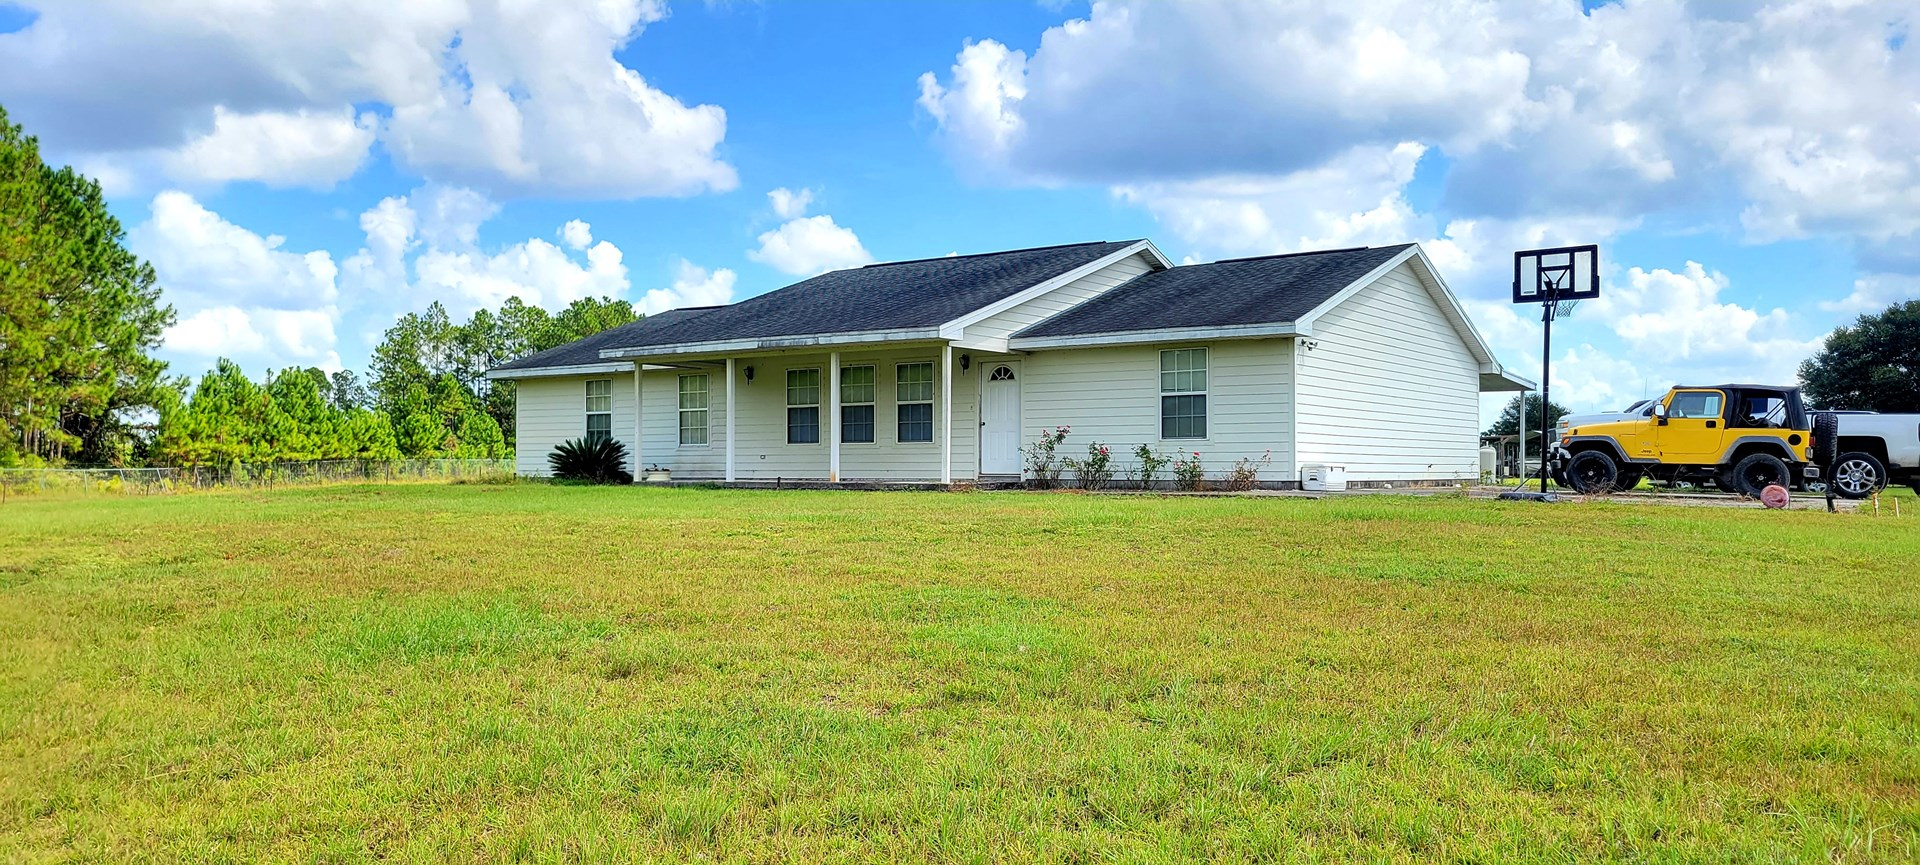 BEAUTIFUL 3/2 HOME ON 5 AC FOR ONLY $425,000.00!!!!